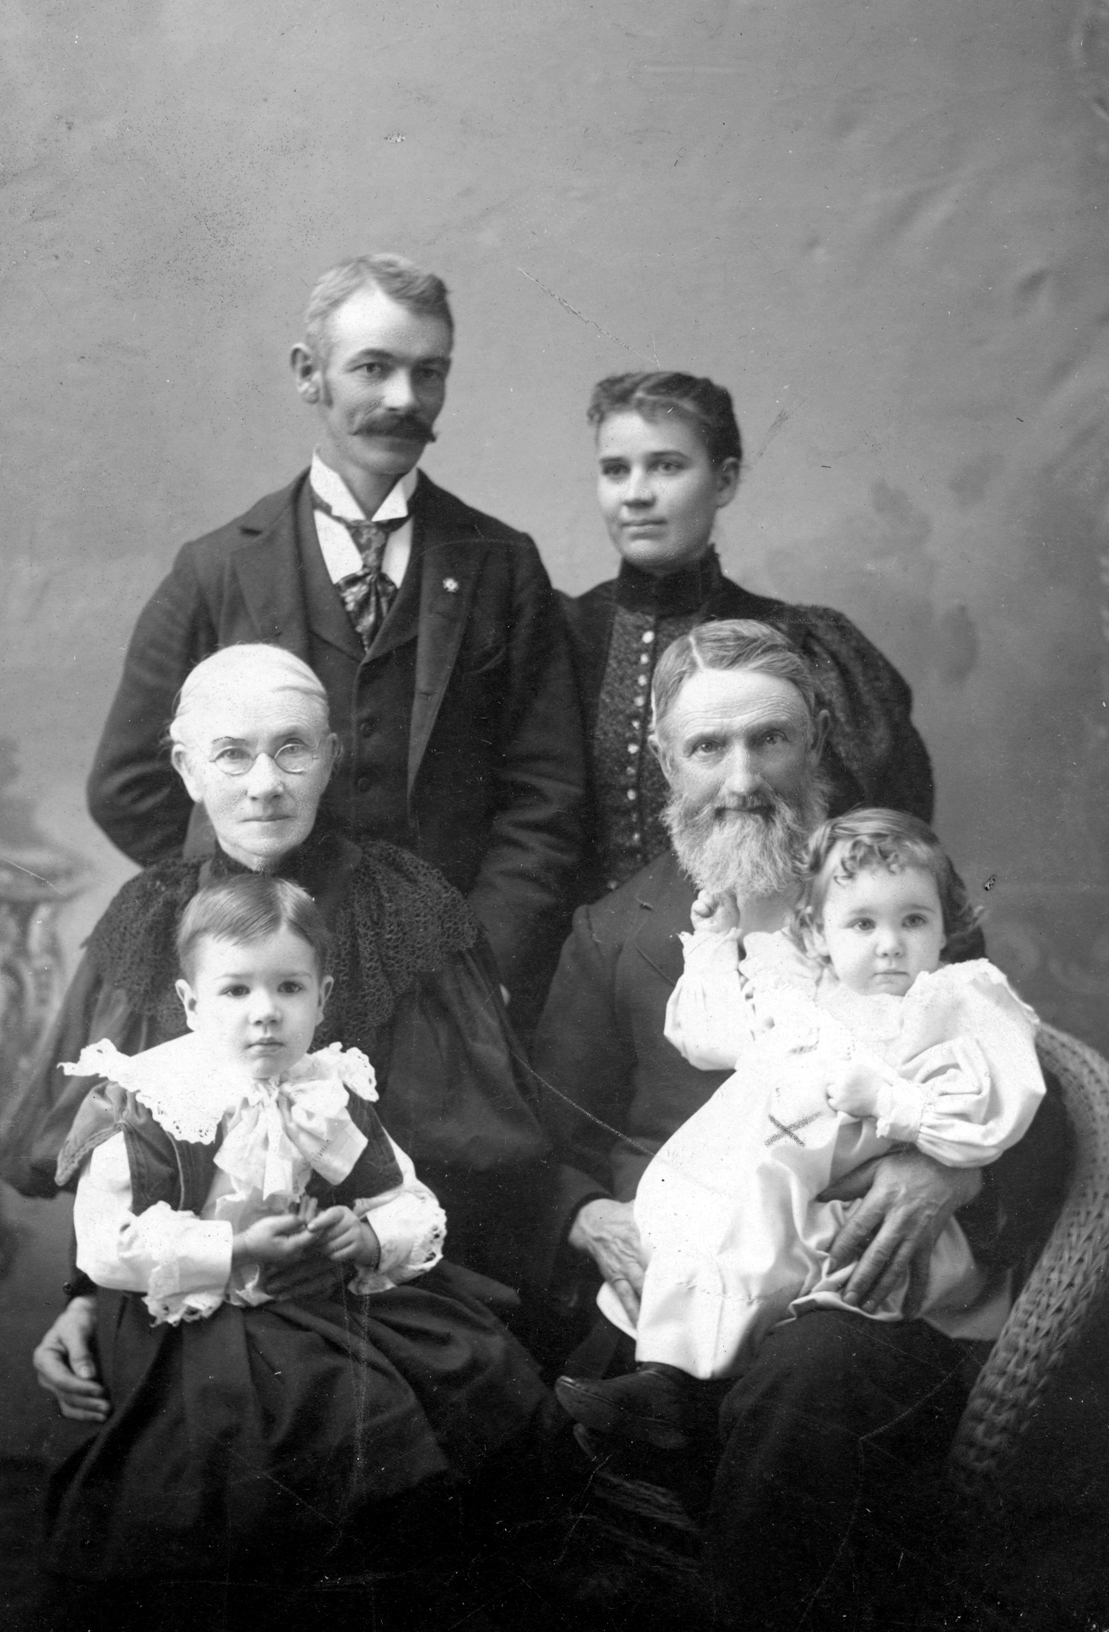 Carl S. English, wife Betah, Carl's mother and father, Persis and Jude, with Roy and Beulah.